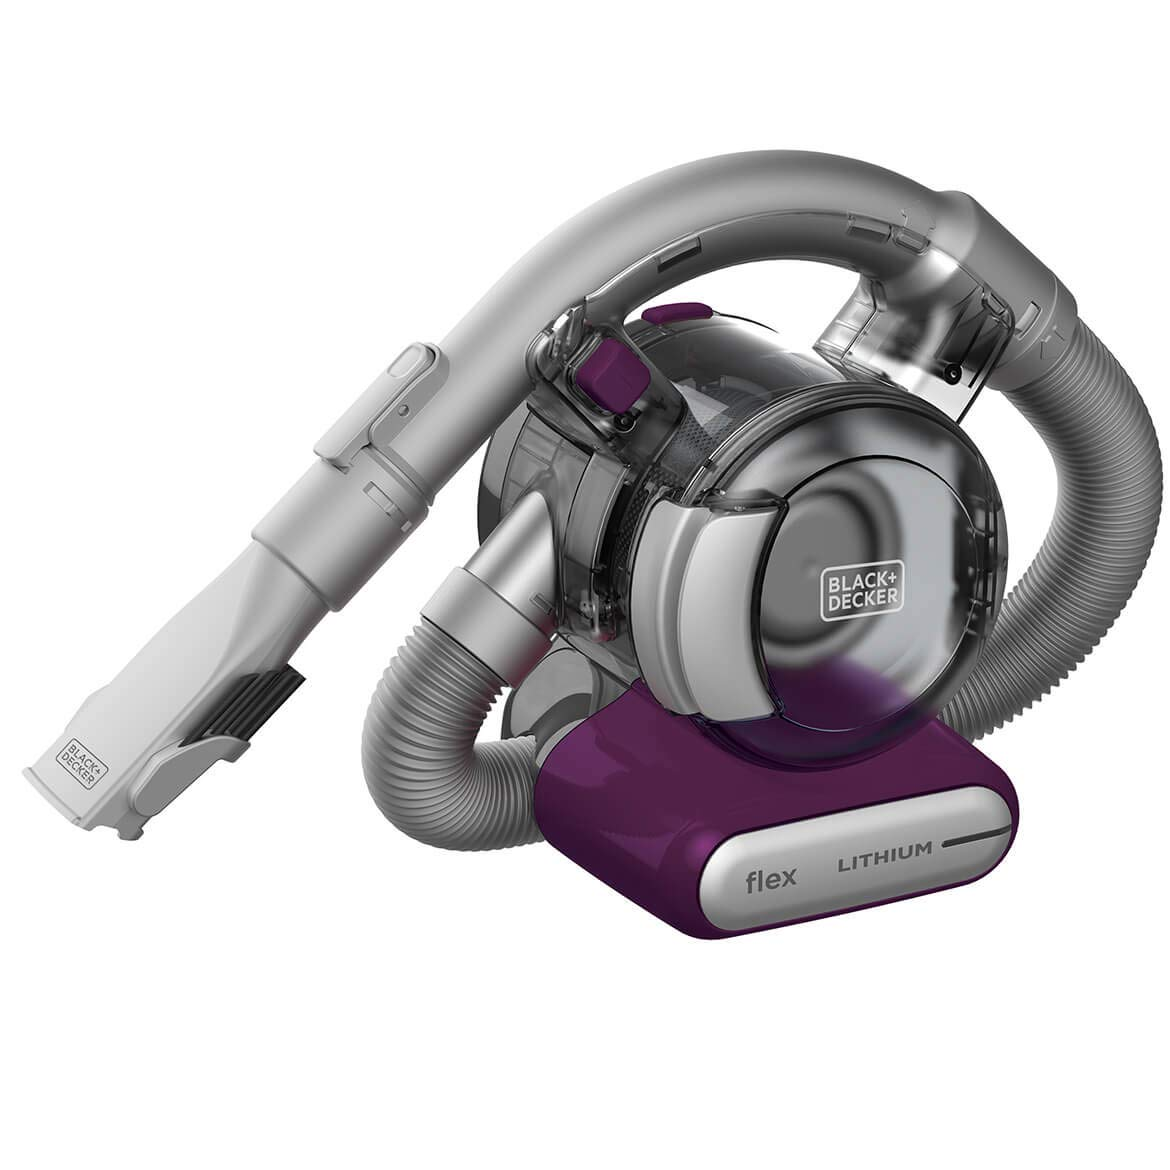 BLACK+DECKER Flex Handheld Cordless Vacuum, Eggplant (HFVB320J27) by BLACK+DECKER